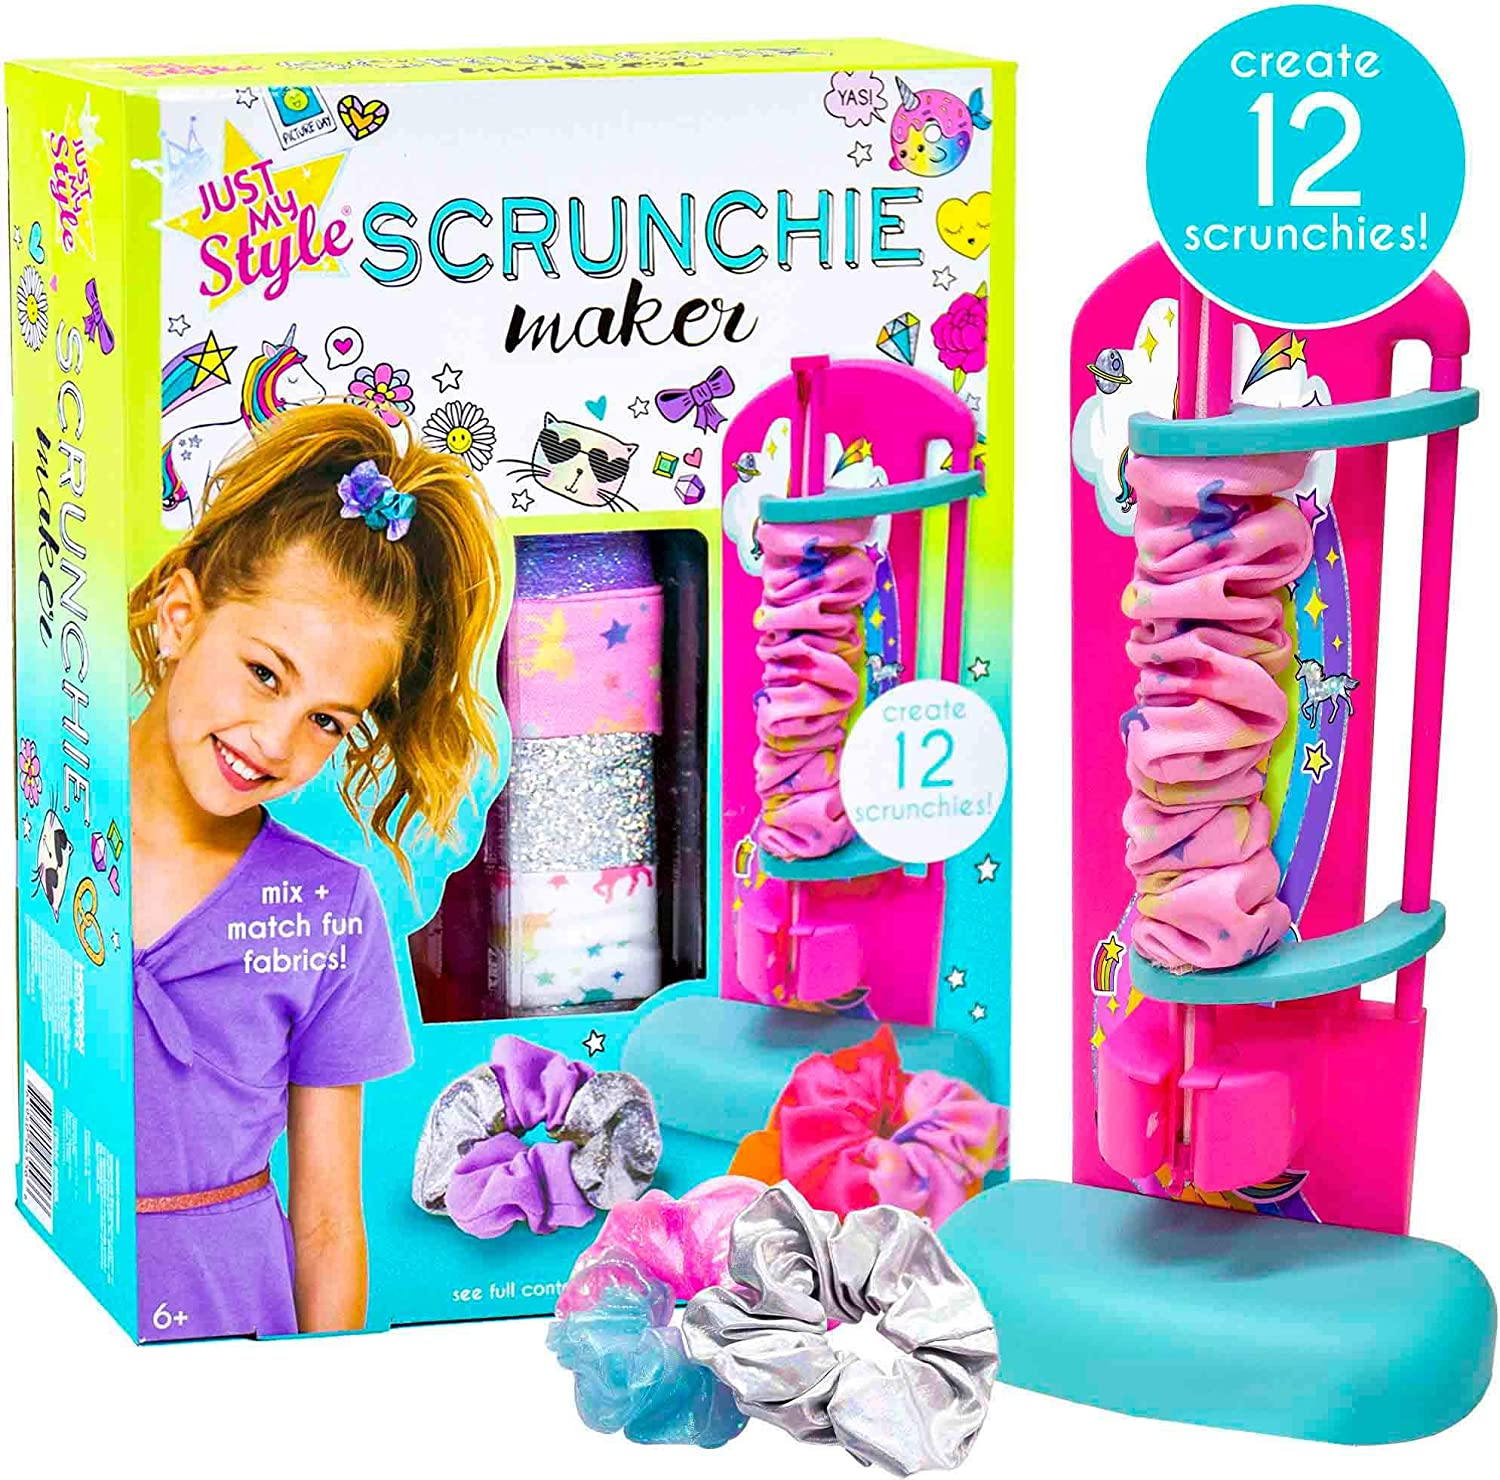 Just My Style D.I.Y. Scrunchie Maker by Horizon Group USA, Design Your Own Colorful Satin Scrunchies Hair Bands, Easy-to-Use Tool & Gemstones Included